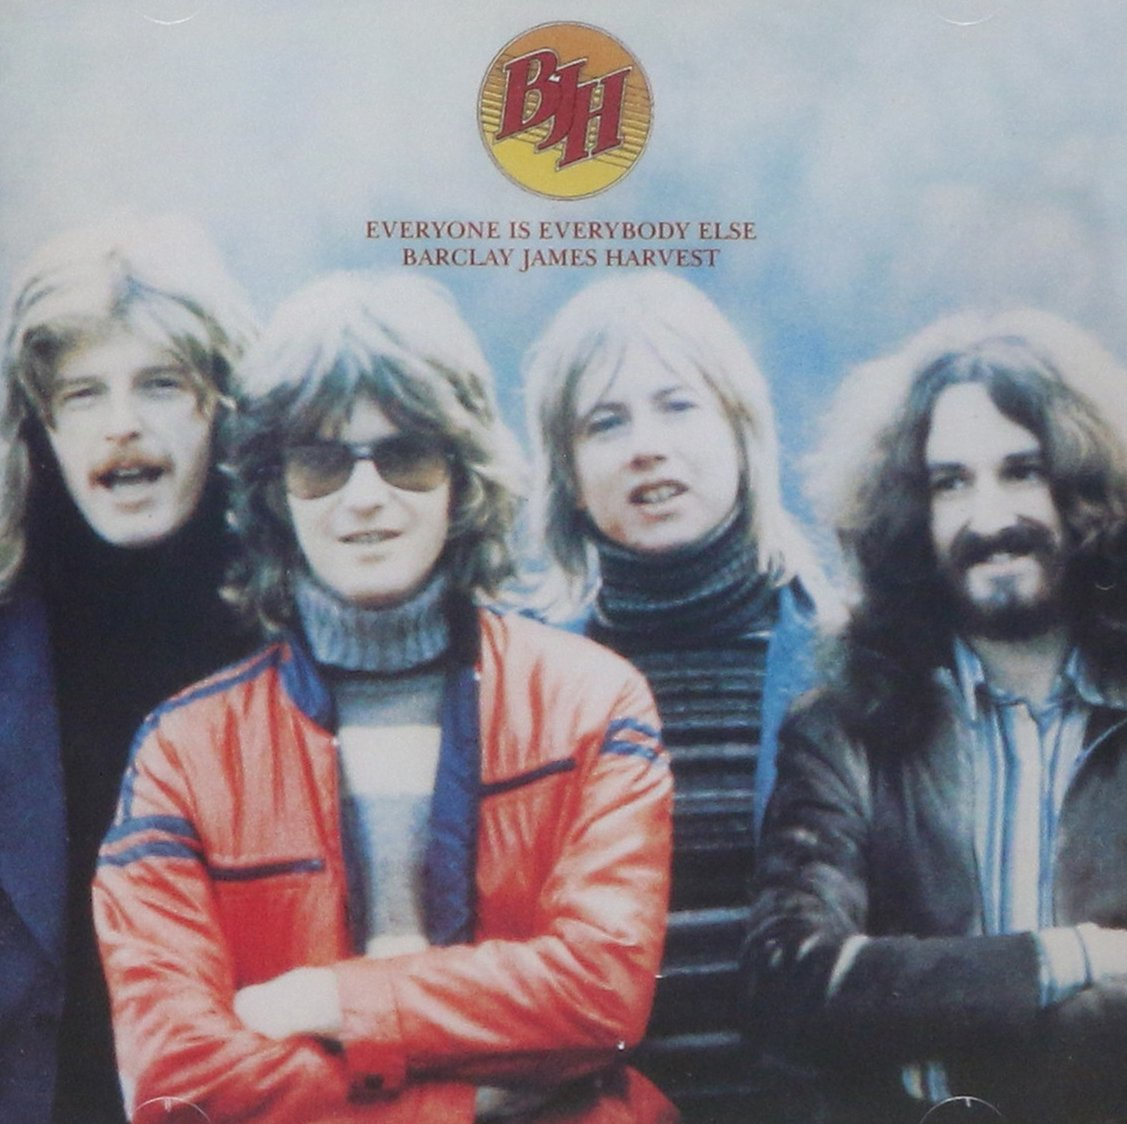 CD : Barclay James Harvest - Everyone Is Everybody Else (Bonus Tracks, Remastered)